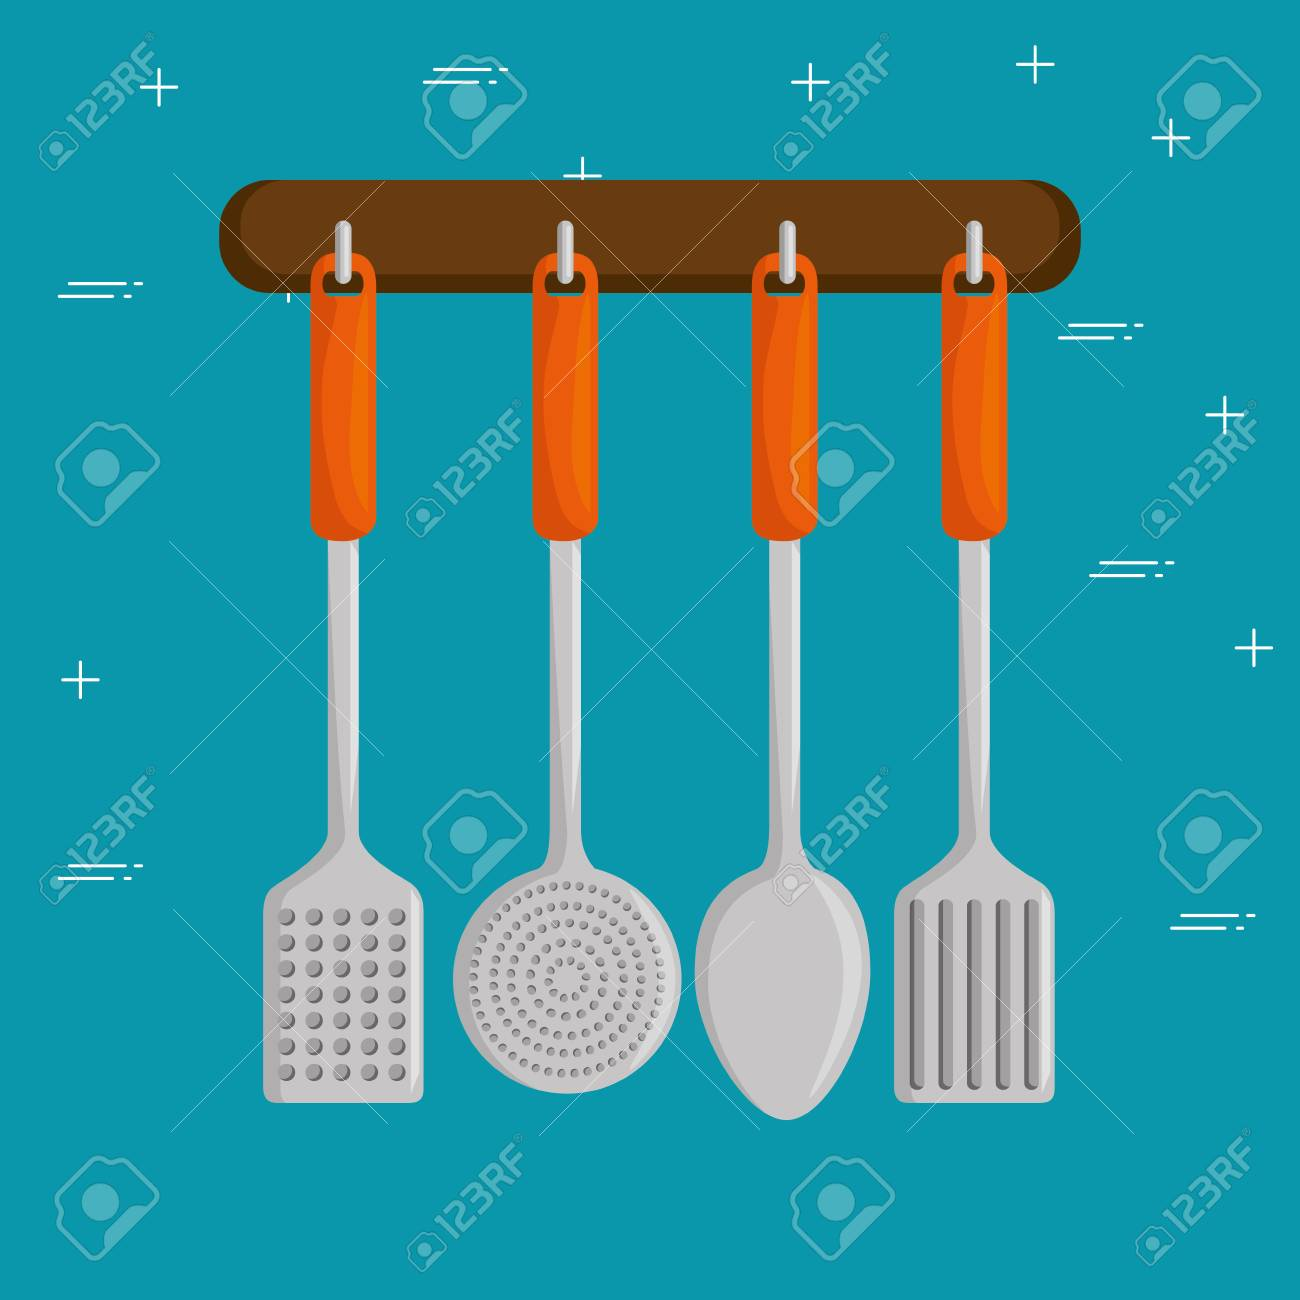 colorful kitchen utensils. Colorful Kitchen Utensils Vector Illustration Graphic Design Stock - 87710668 I